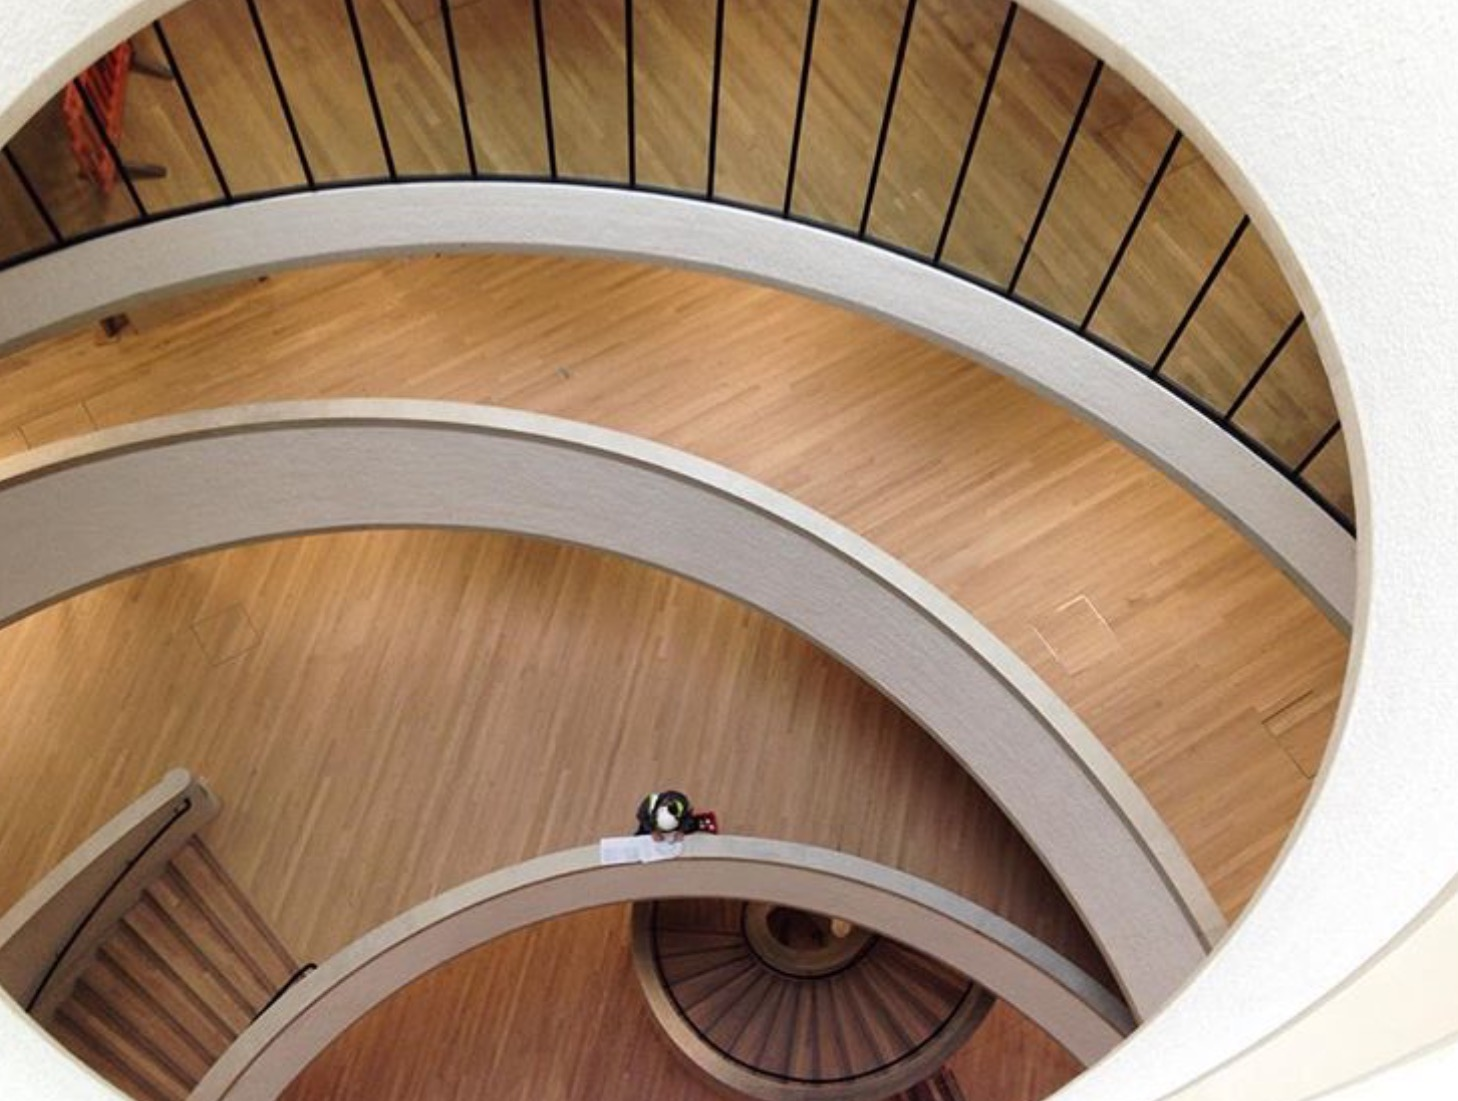 oxford-building-design-oxford-universitys-blavatnik-school-of-government-down-skylight-internal-stairs